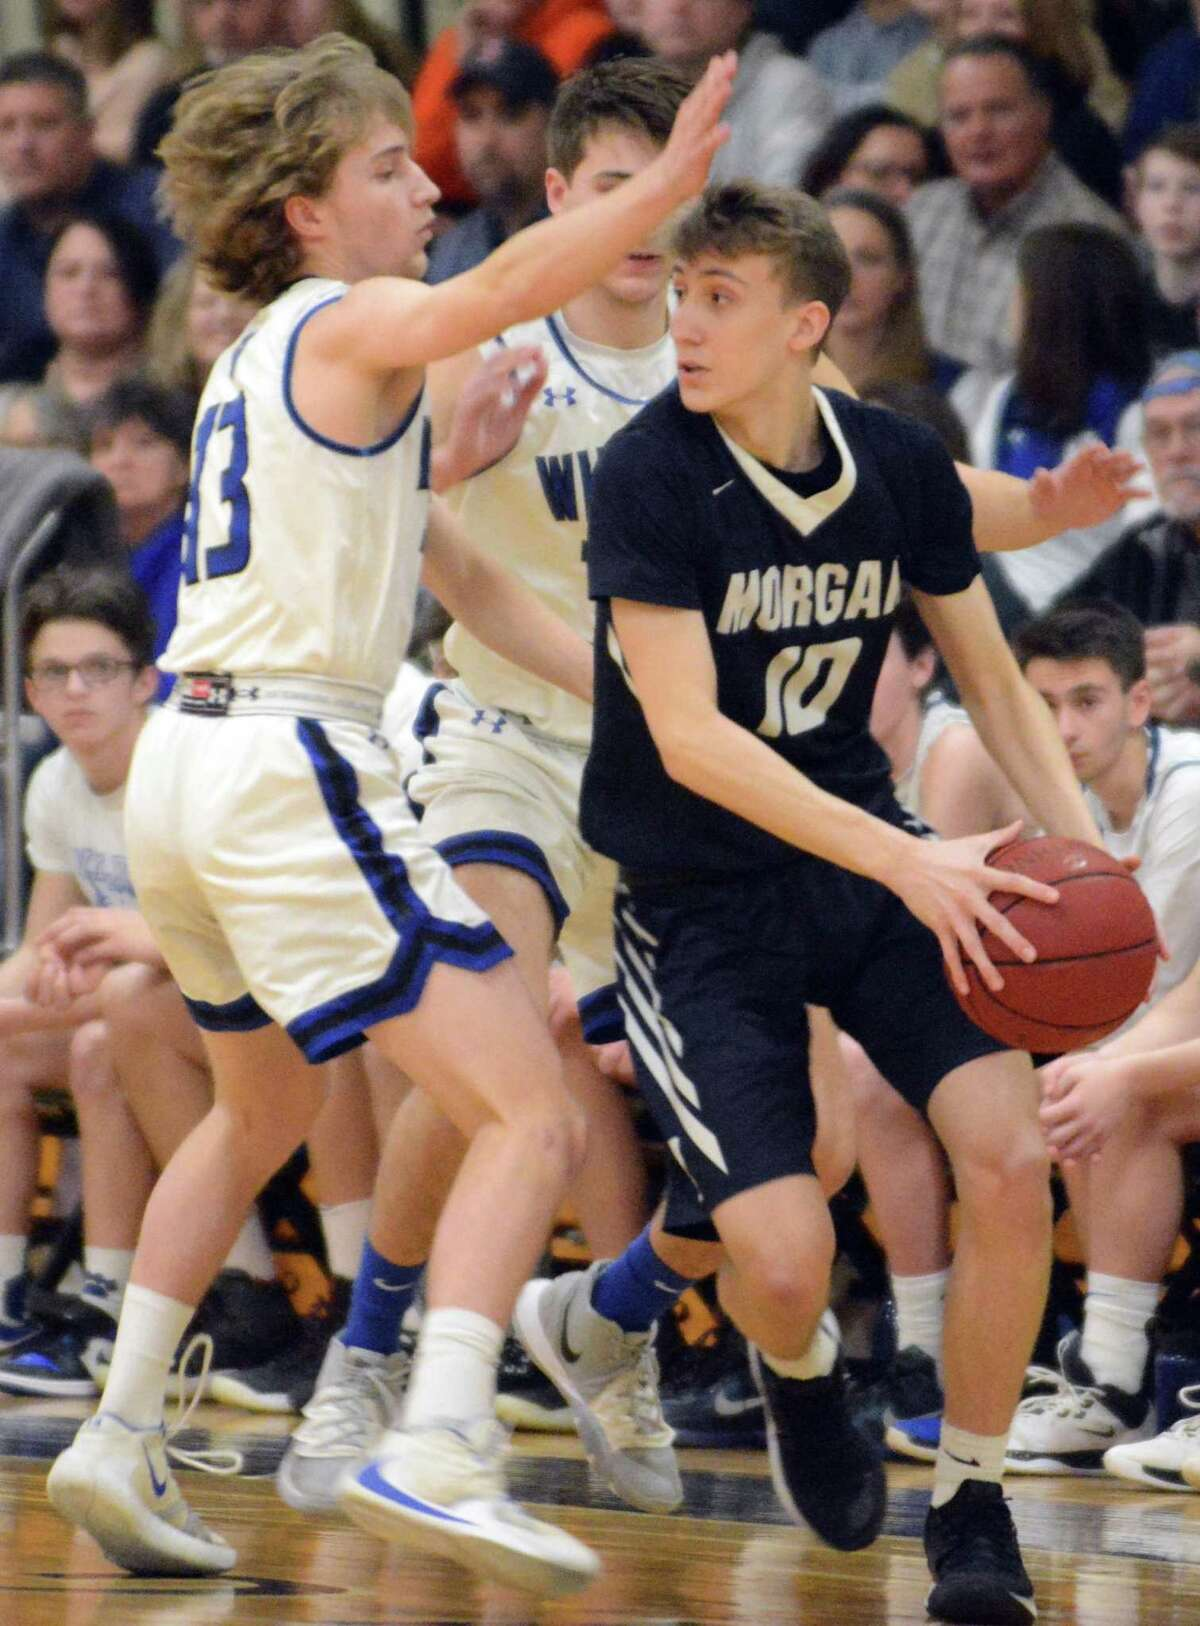 Morgan's Zach Johnson is defended by Old Lyme's Brady Sheffield.